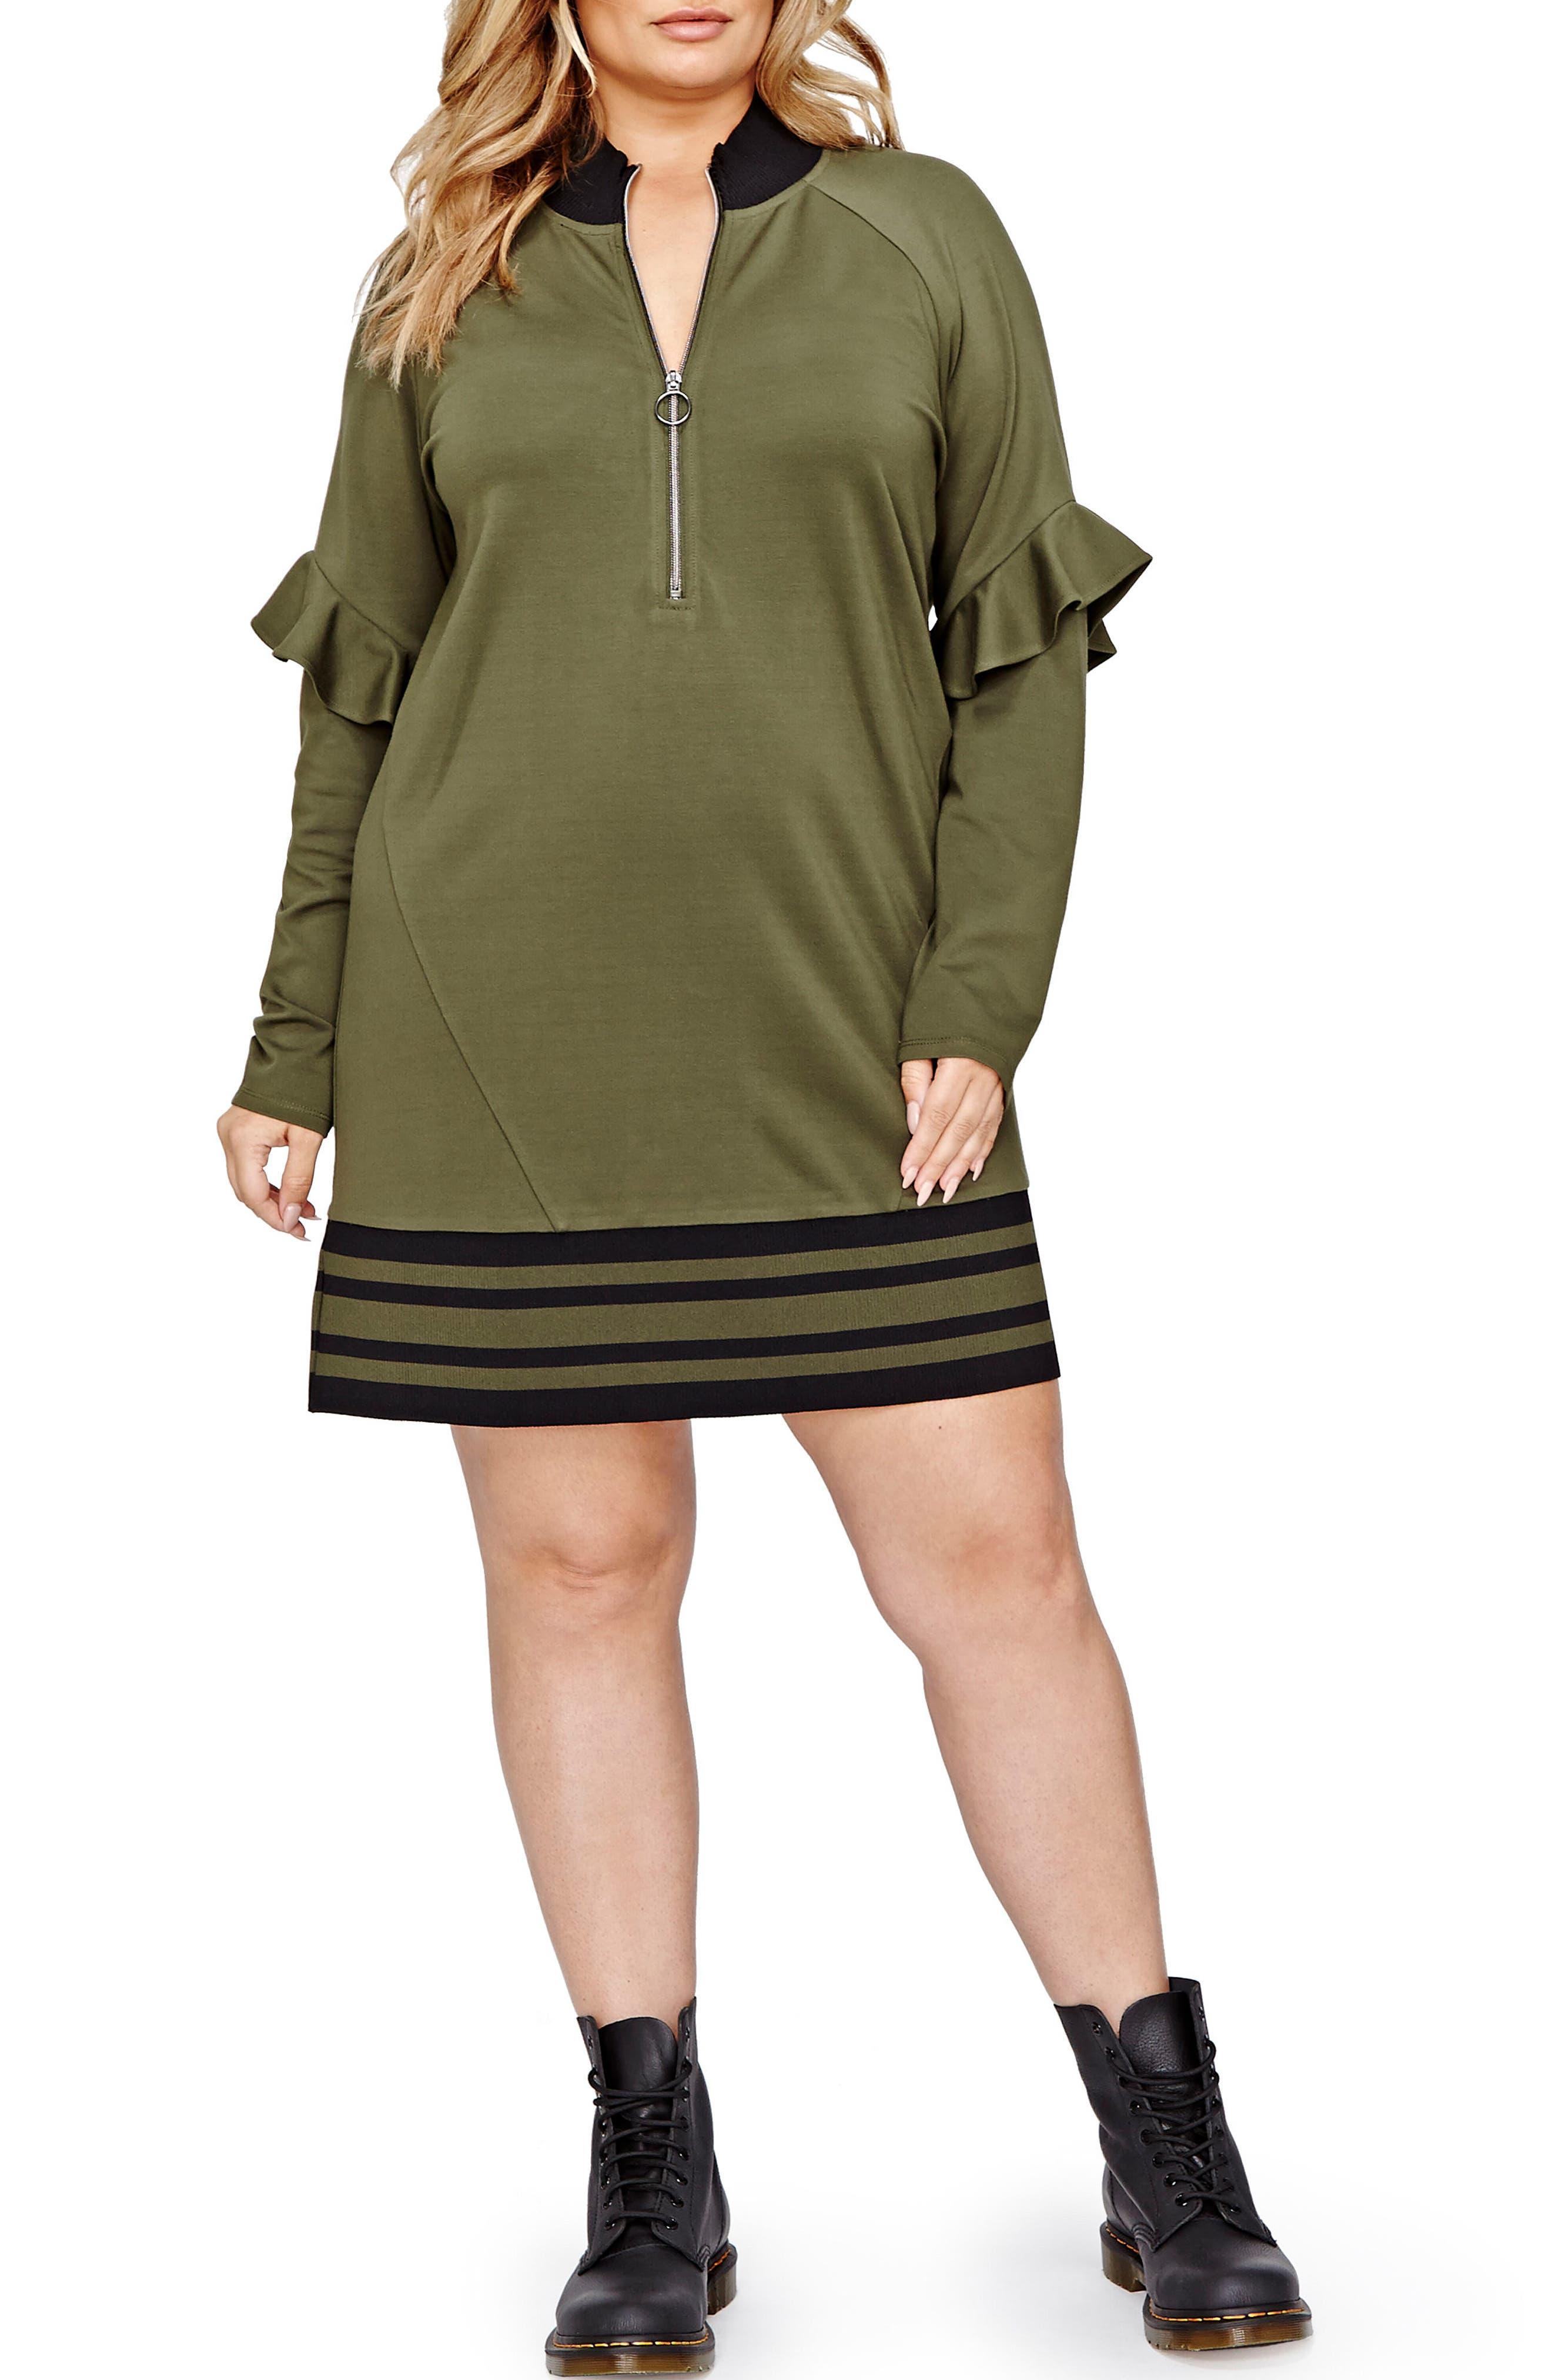 ADDITION ELLE LOVE AND LEGEND Jordyn Woods Zip Neck Tunic (Plus Size)